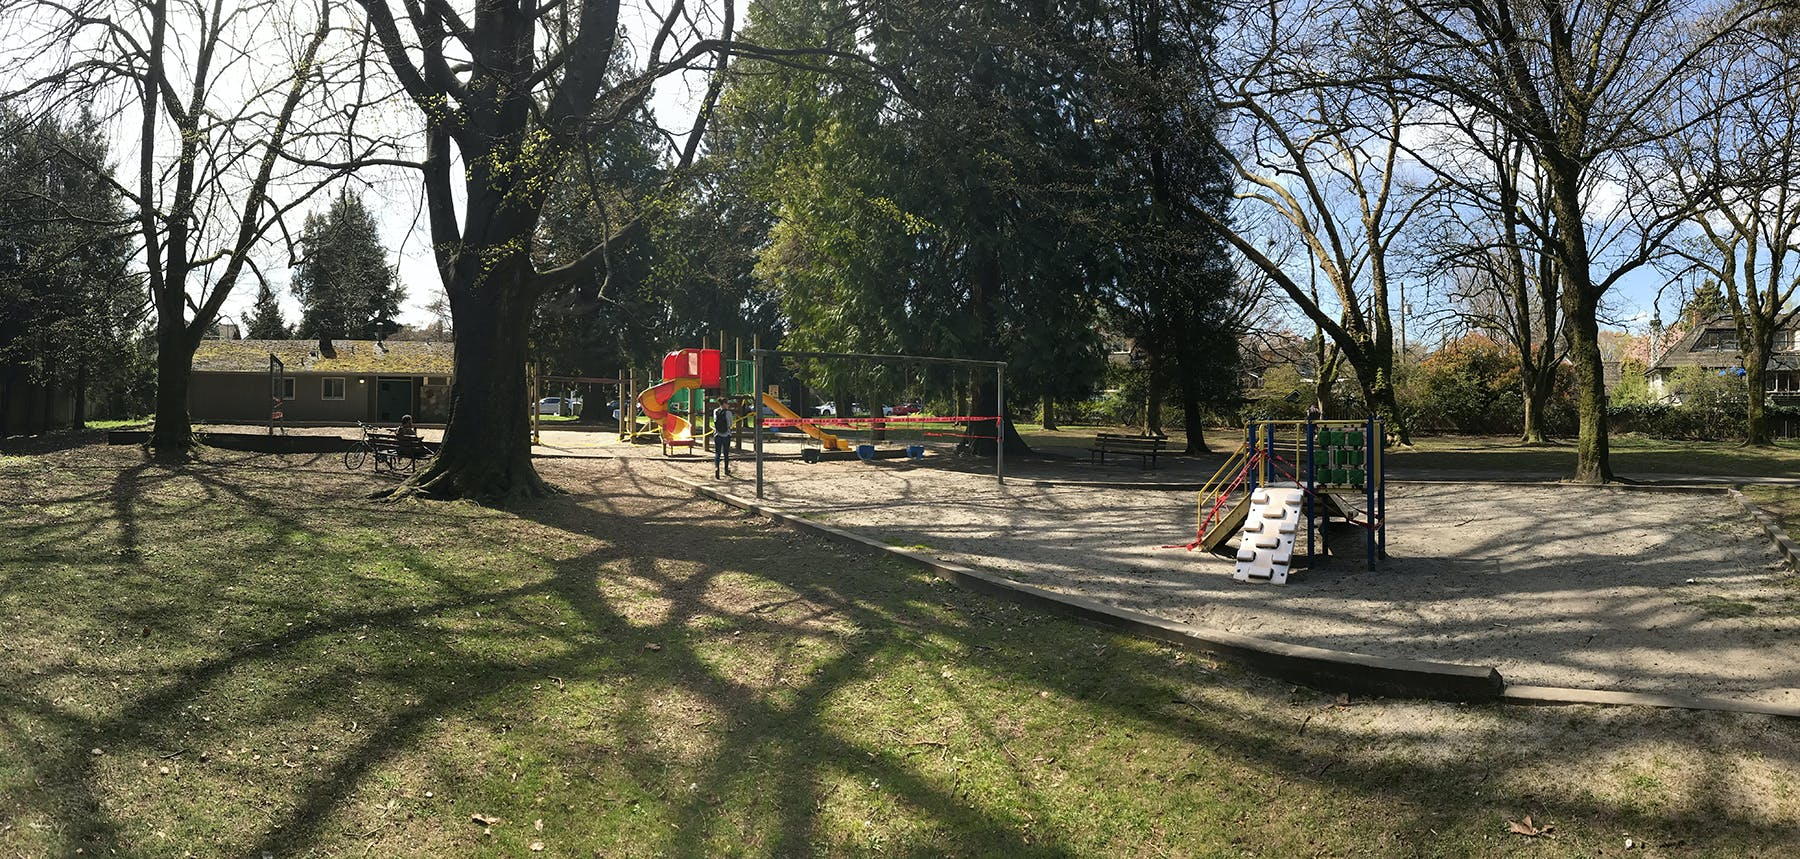 Concept A Location (Existing Playground) - South View